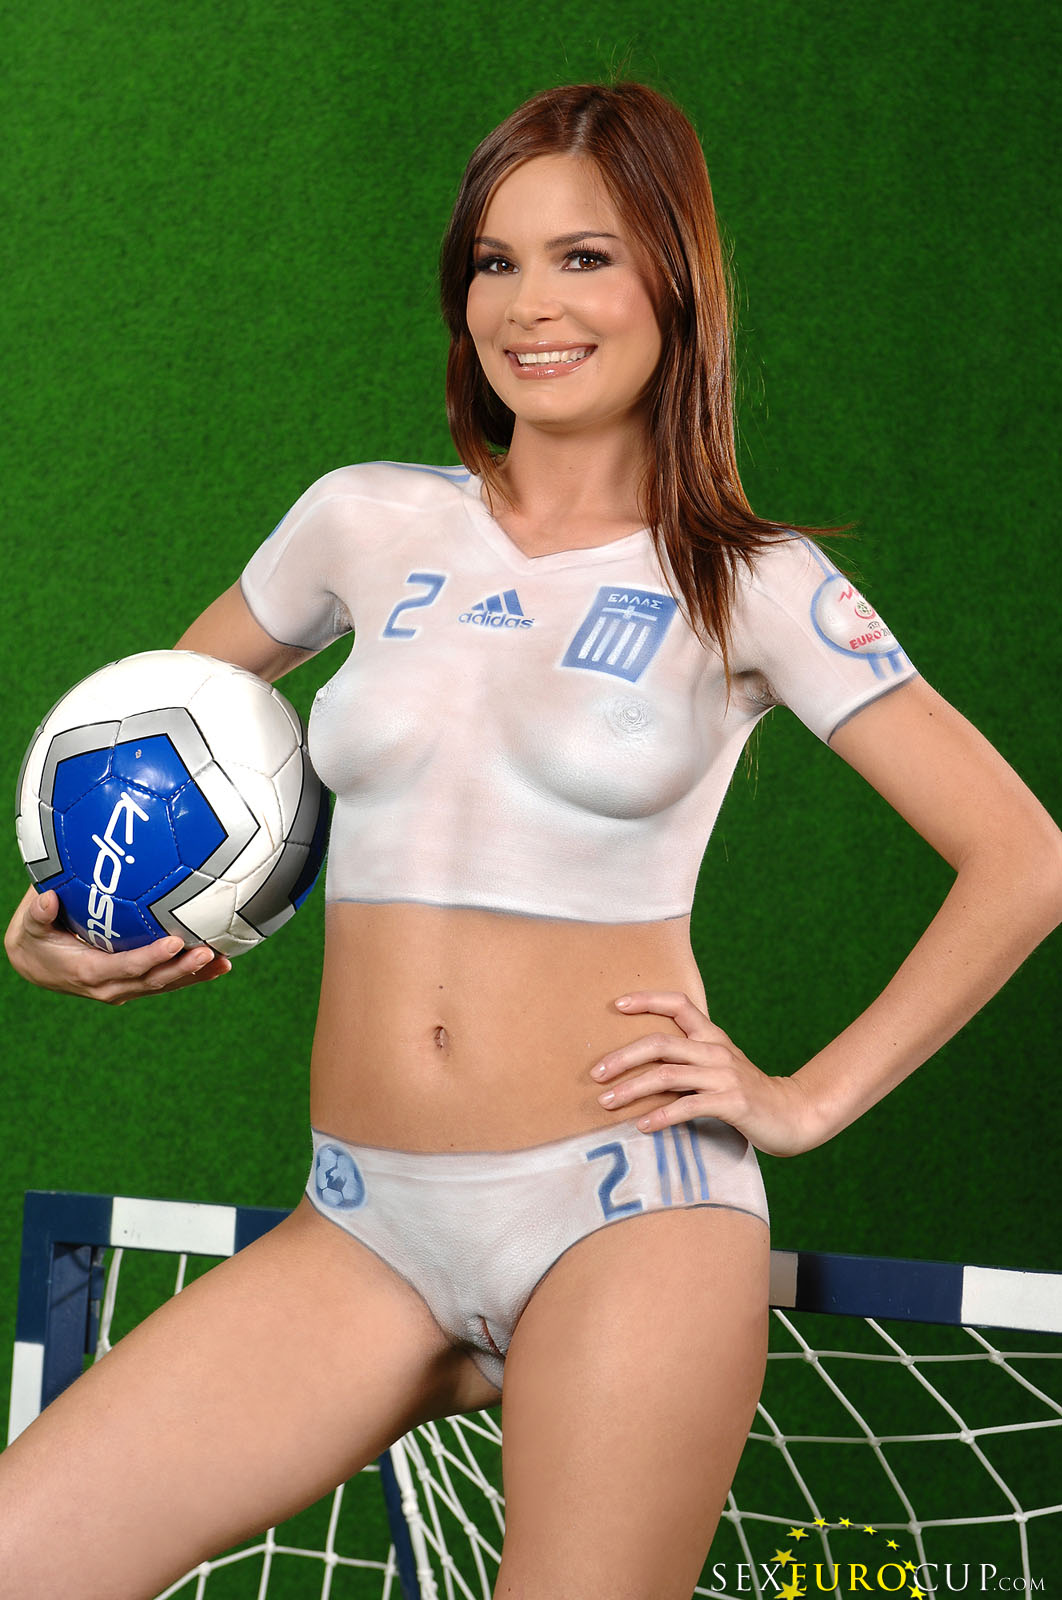 girl body painting pussy Pretty faced smiling babes with perfect bodies pose in painted soccer  uniforms